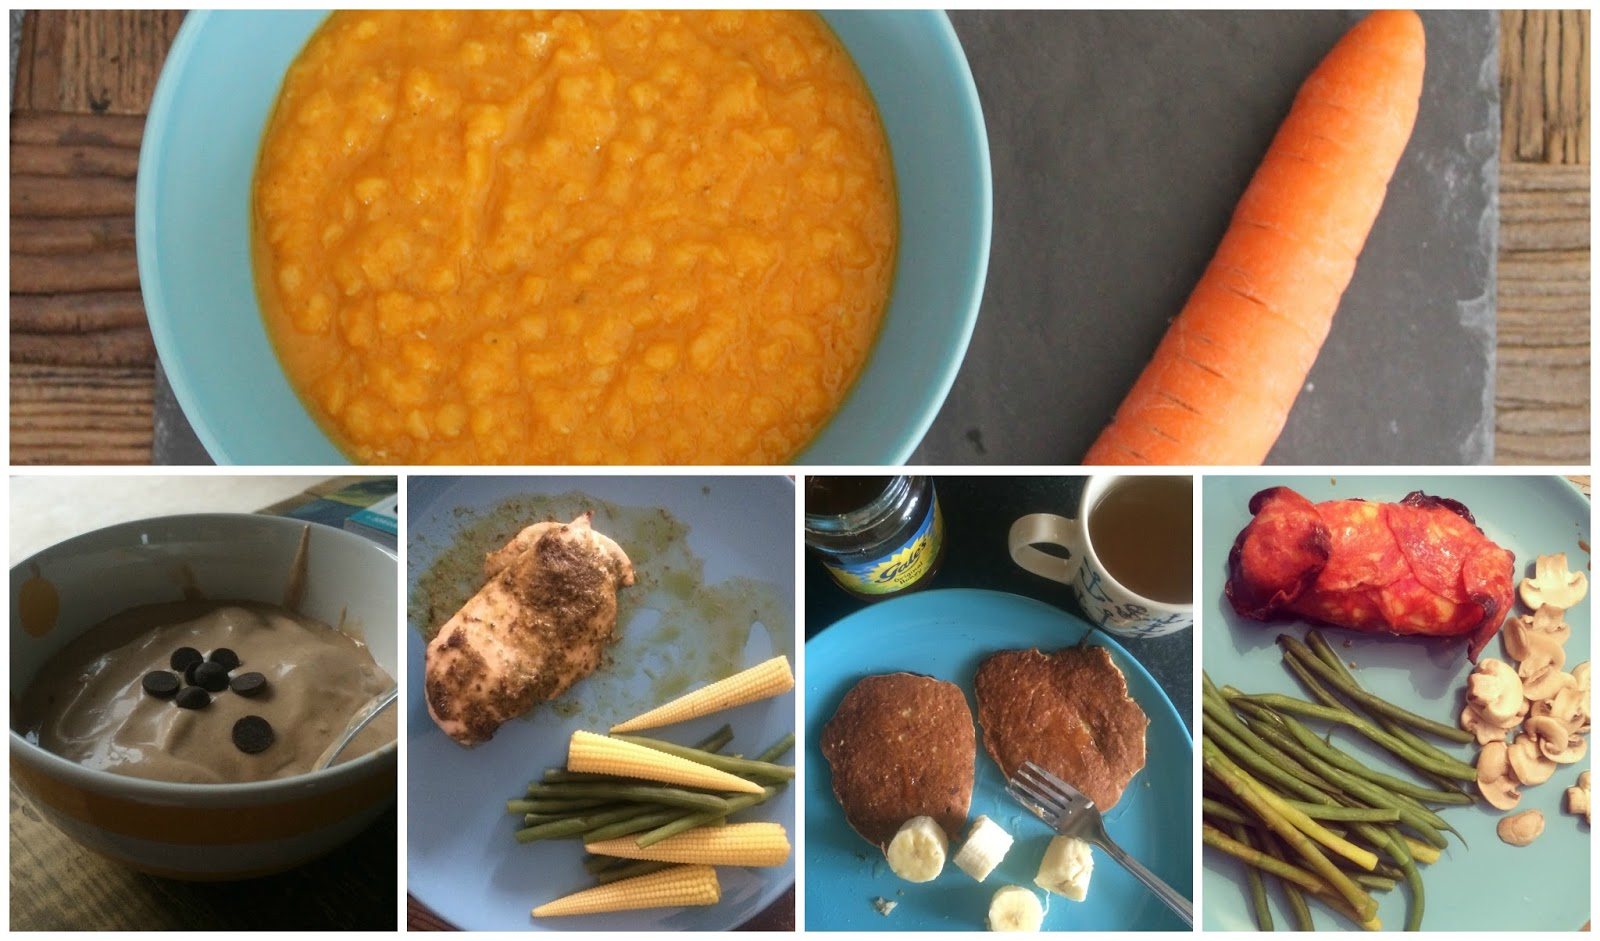 Recipes I've tried and loved - Carrot and Lentil Soup, Banana ice cream, pesto chicken